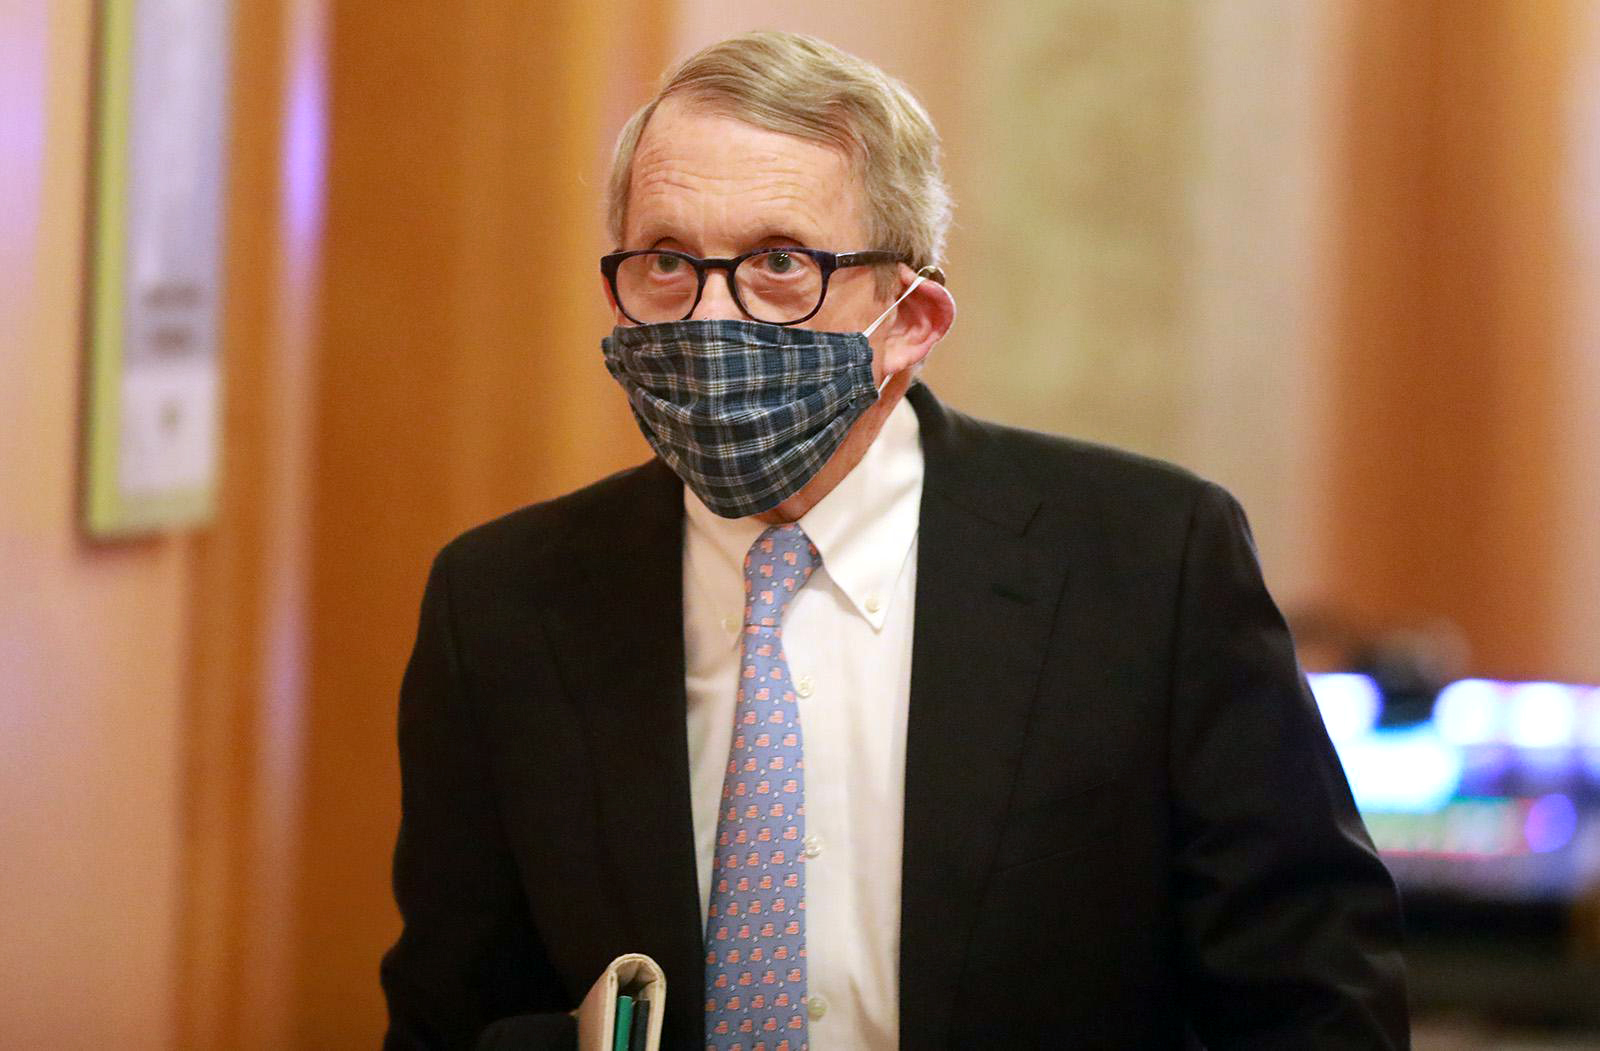 Ohio Gov. Mike DeWine walks into his daily coronavirus news conference at the Ohio Statehouse in Columbus, Ohio on April 16.